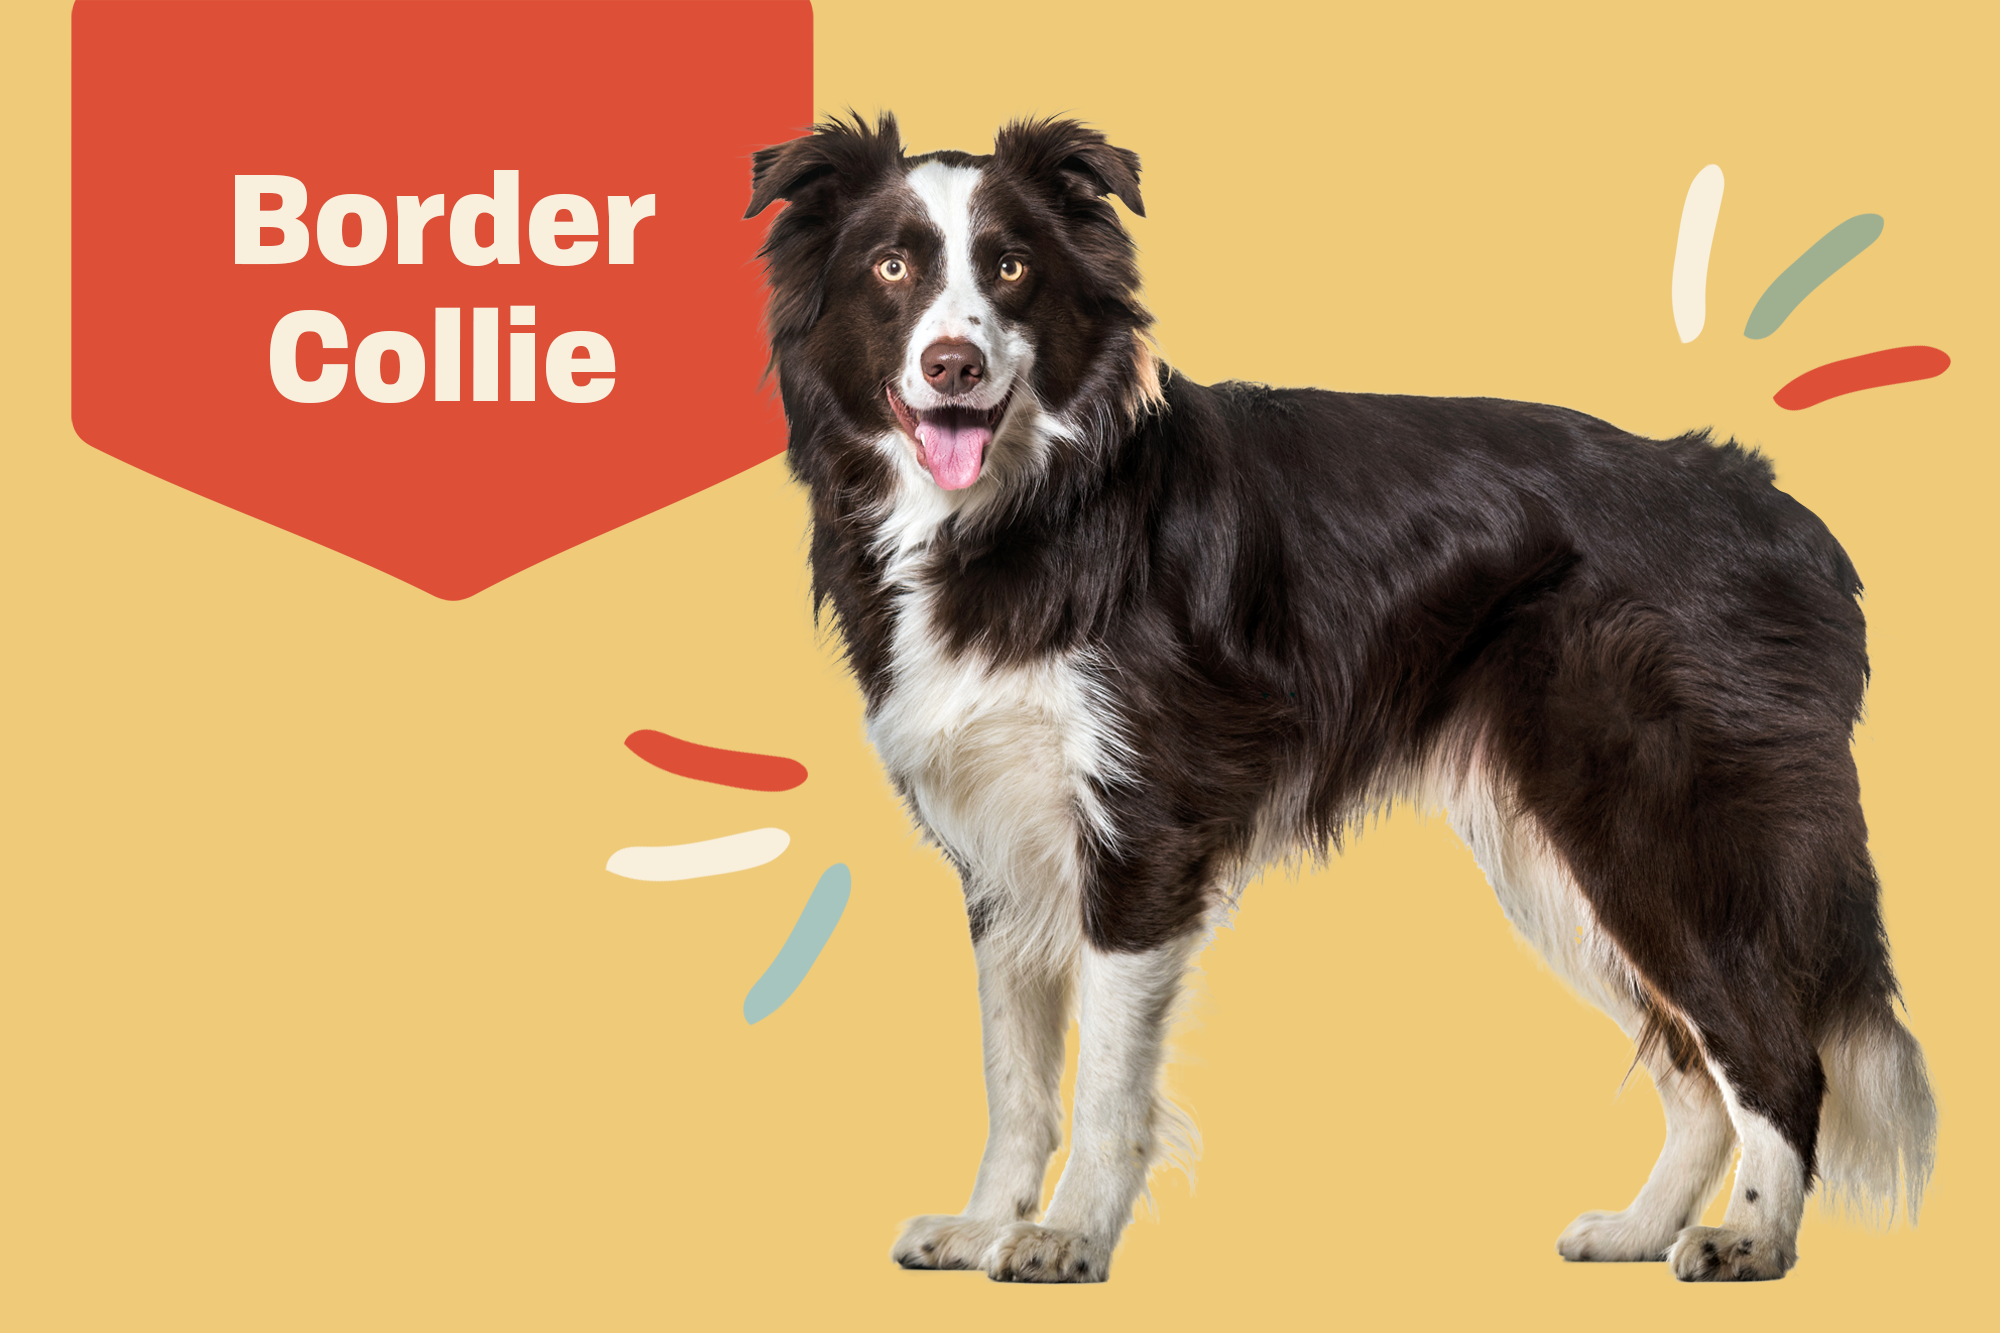 Loving new border looking homes for collies CAORA BORDER